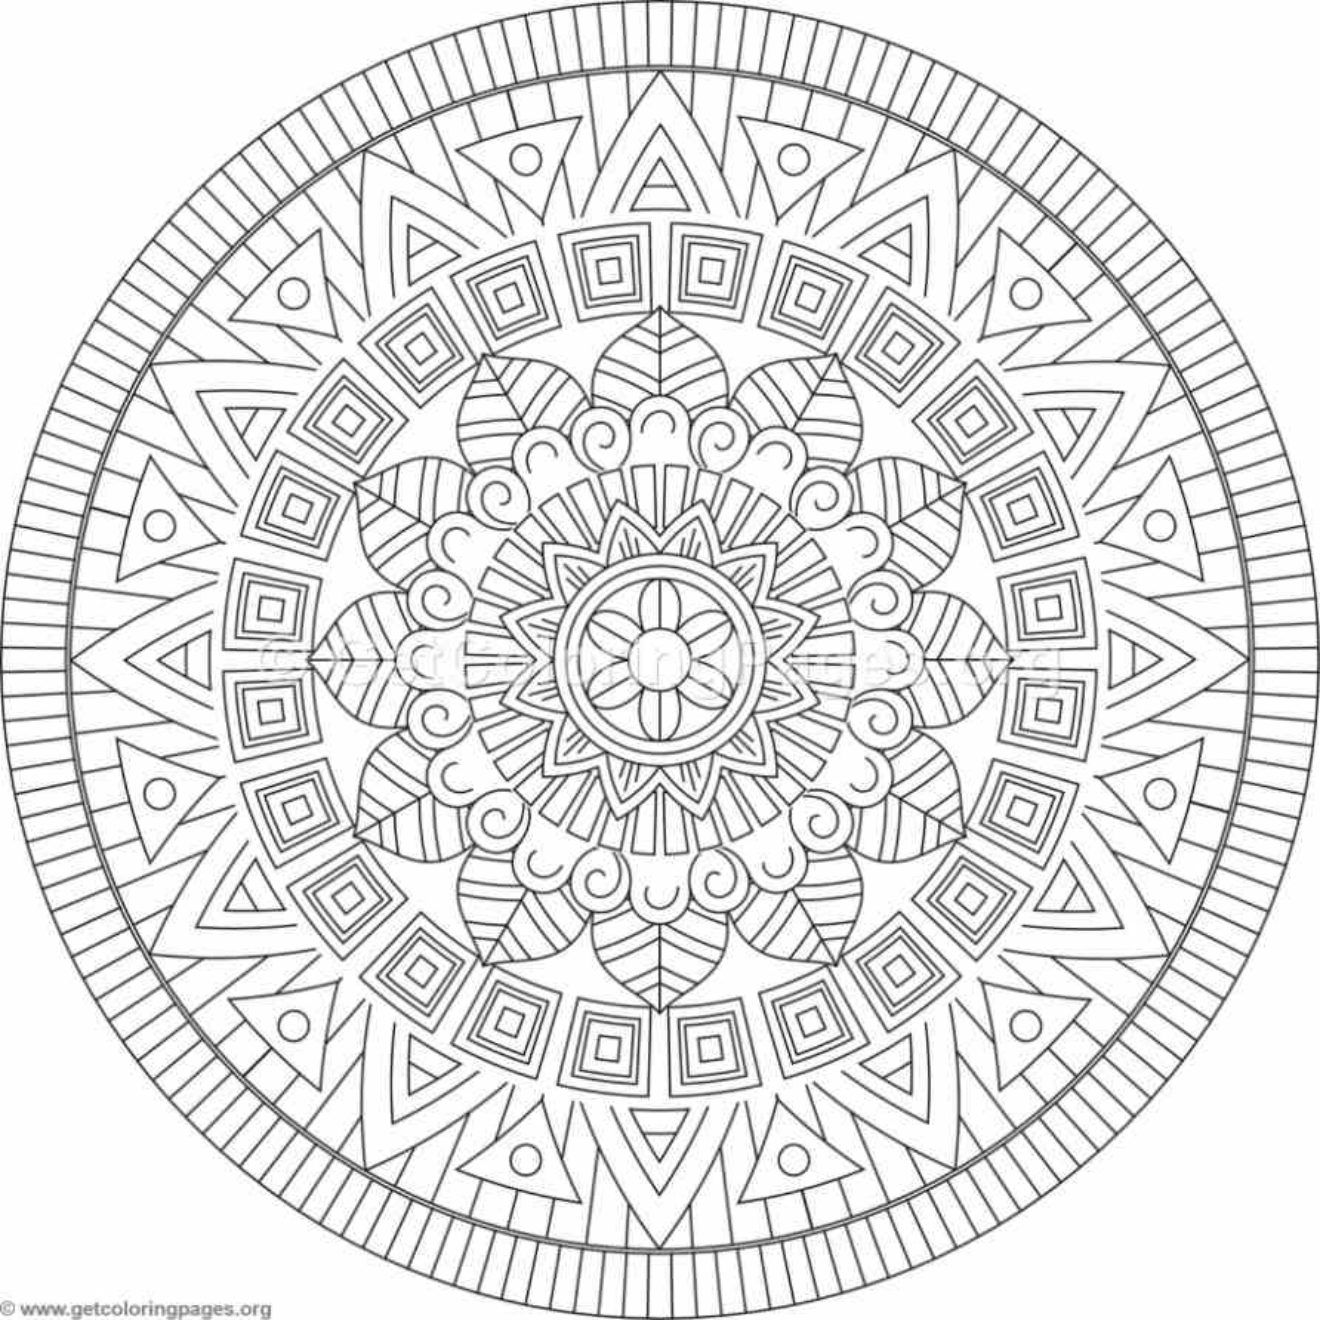 Tribal Mandala Coloring Pages 136 Getcoloringpages Org Mandala Coloring Pages Geometric Coloring Pages Mandala Coloring